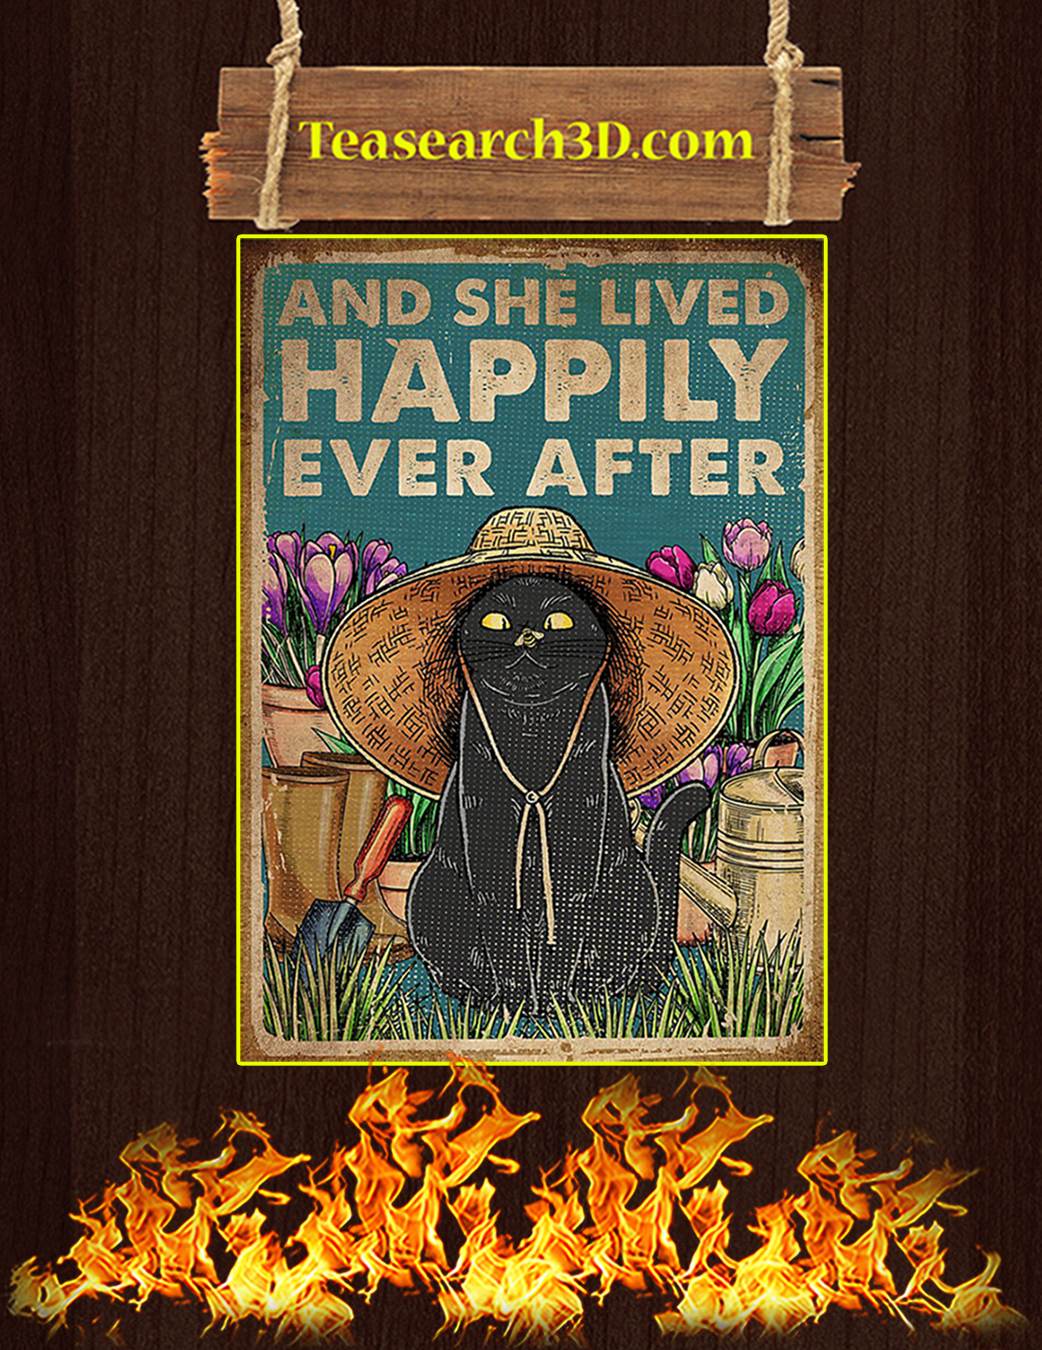 Cat gardening and she lived happily ever after poster A1